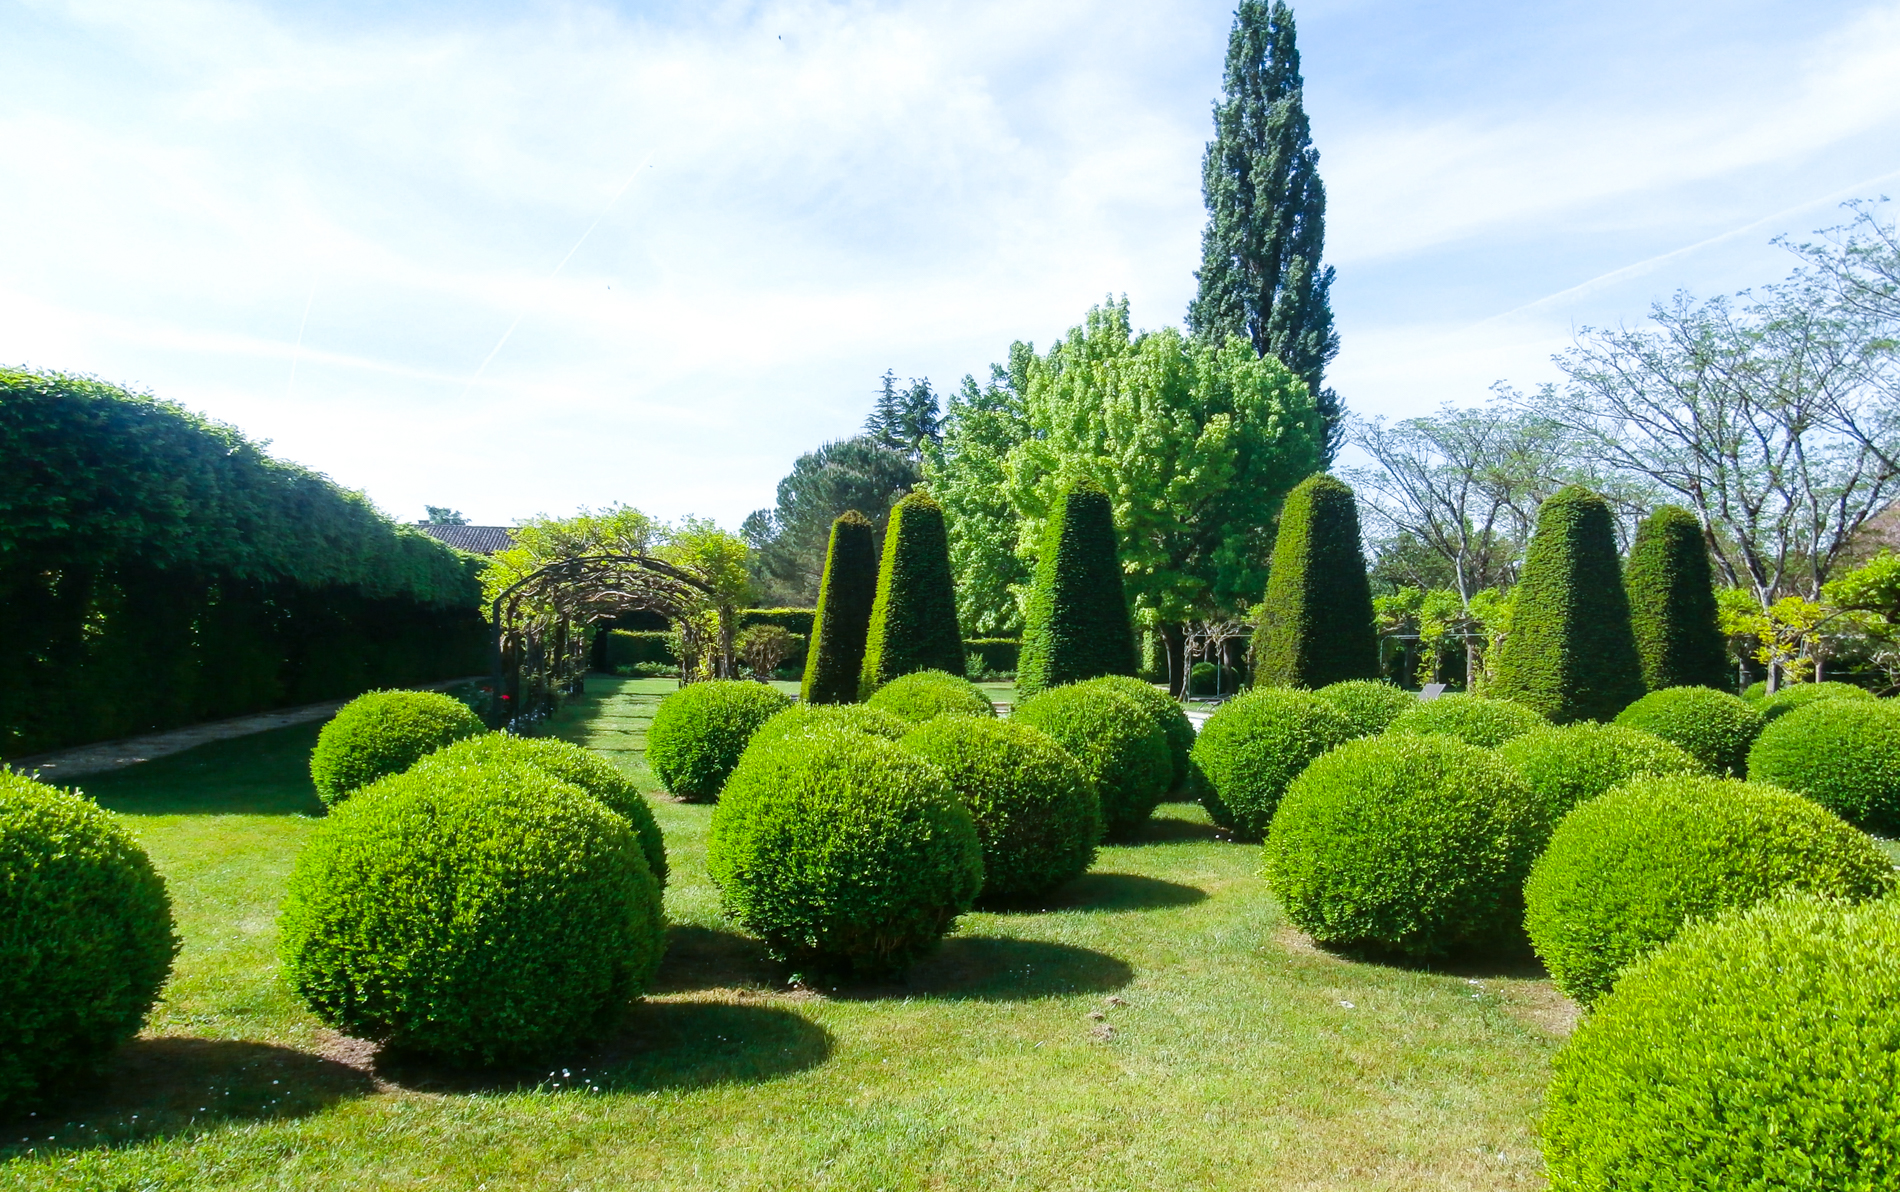 The gardens at Le Vieux Logis